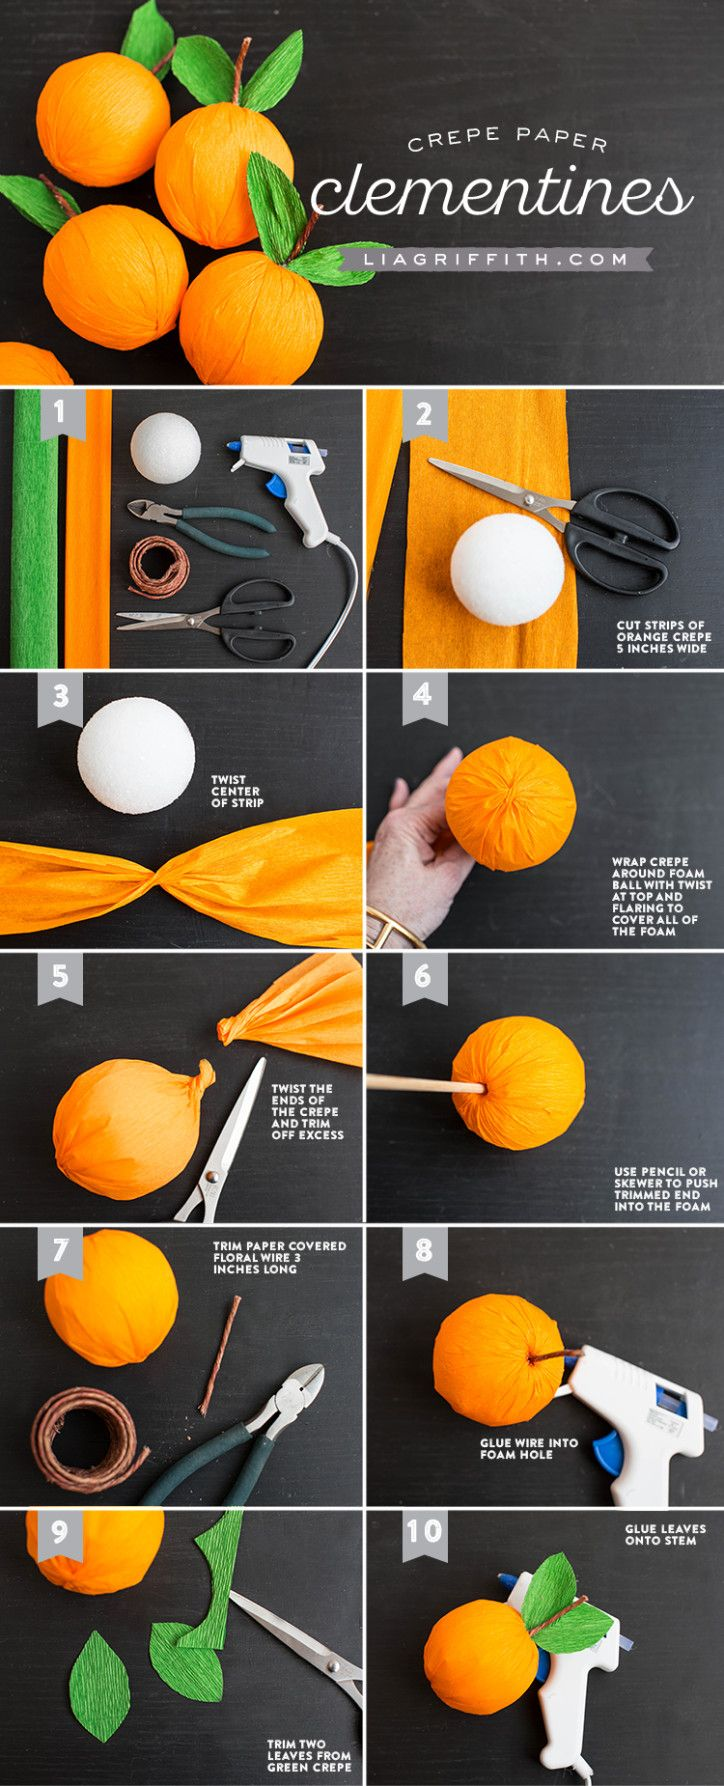 Paper covered craft wire - Diy Crepe Paper Clementine Crepe_clementine_tutorial